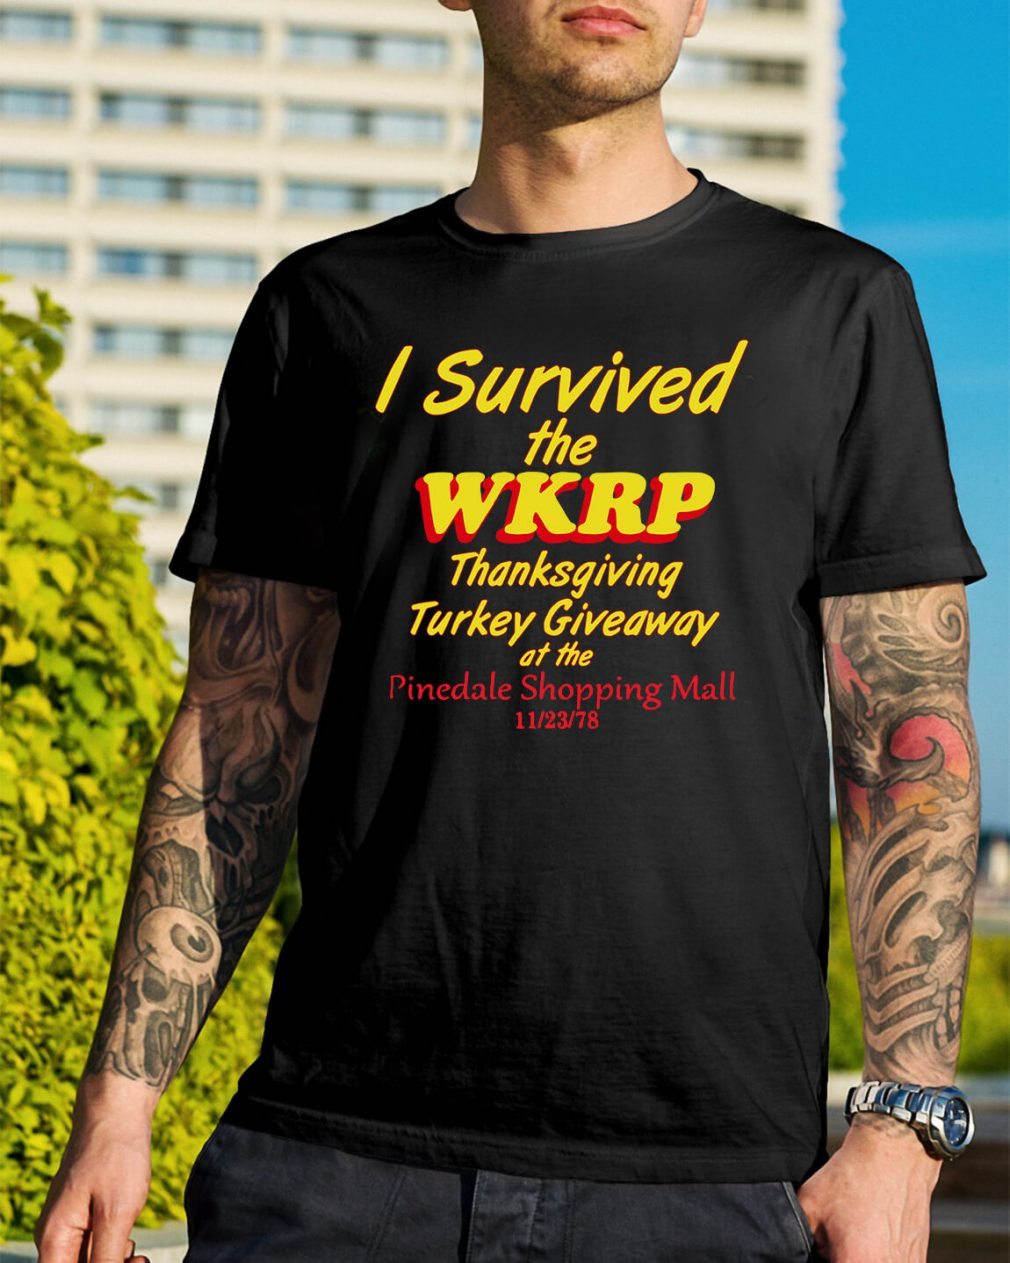 I survived the WKRP Thanksgiving Turkey giveaway at the Pinedale shirt